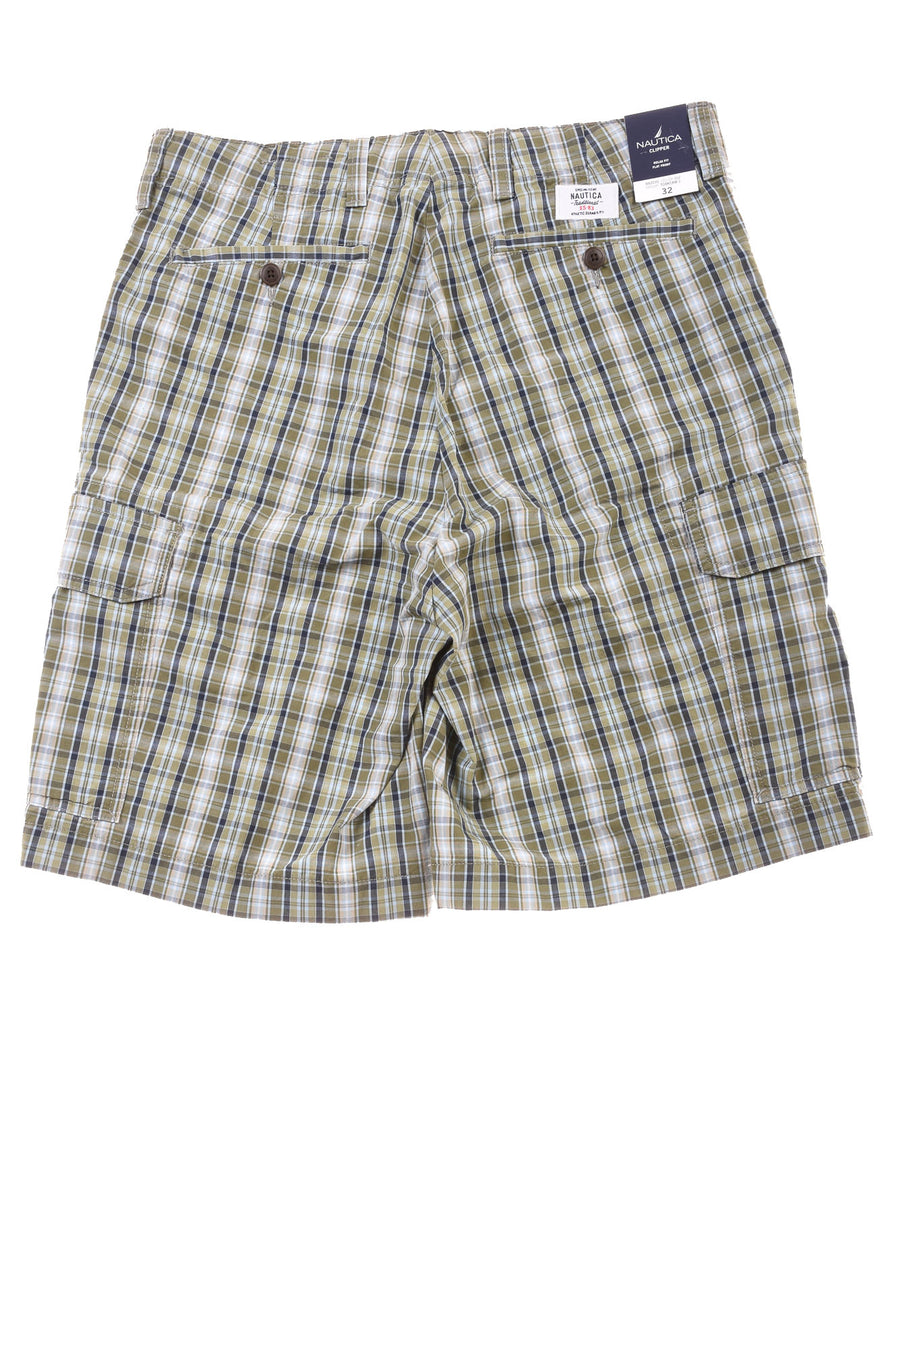 NEW Nautica Men's Shorts  32 Green & Blue